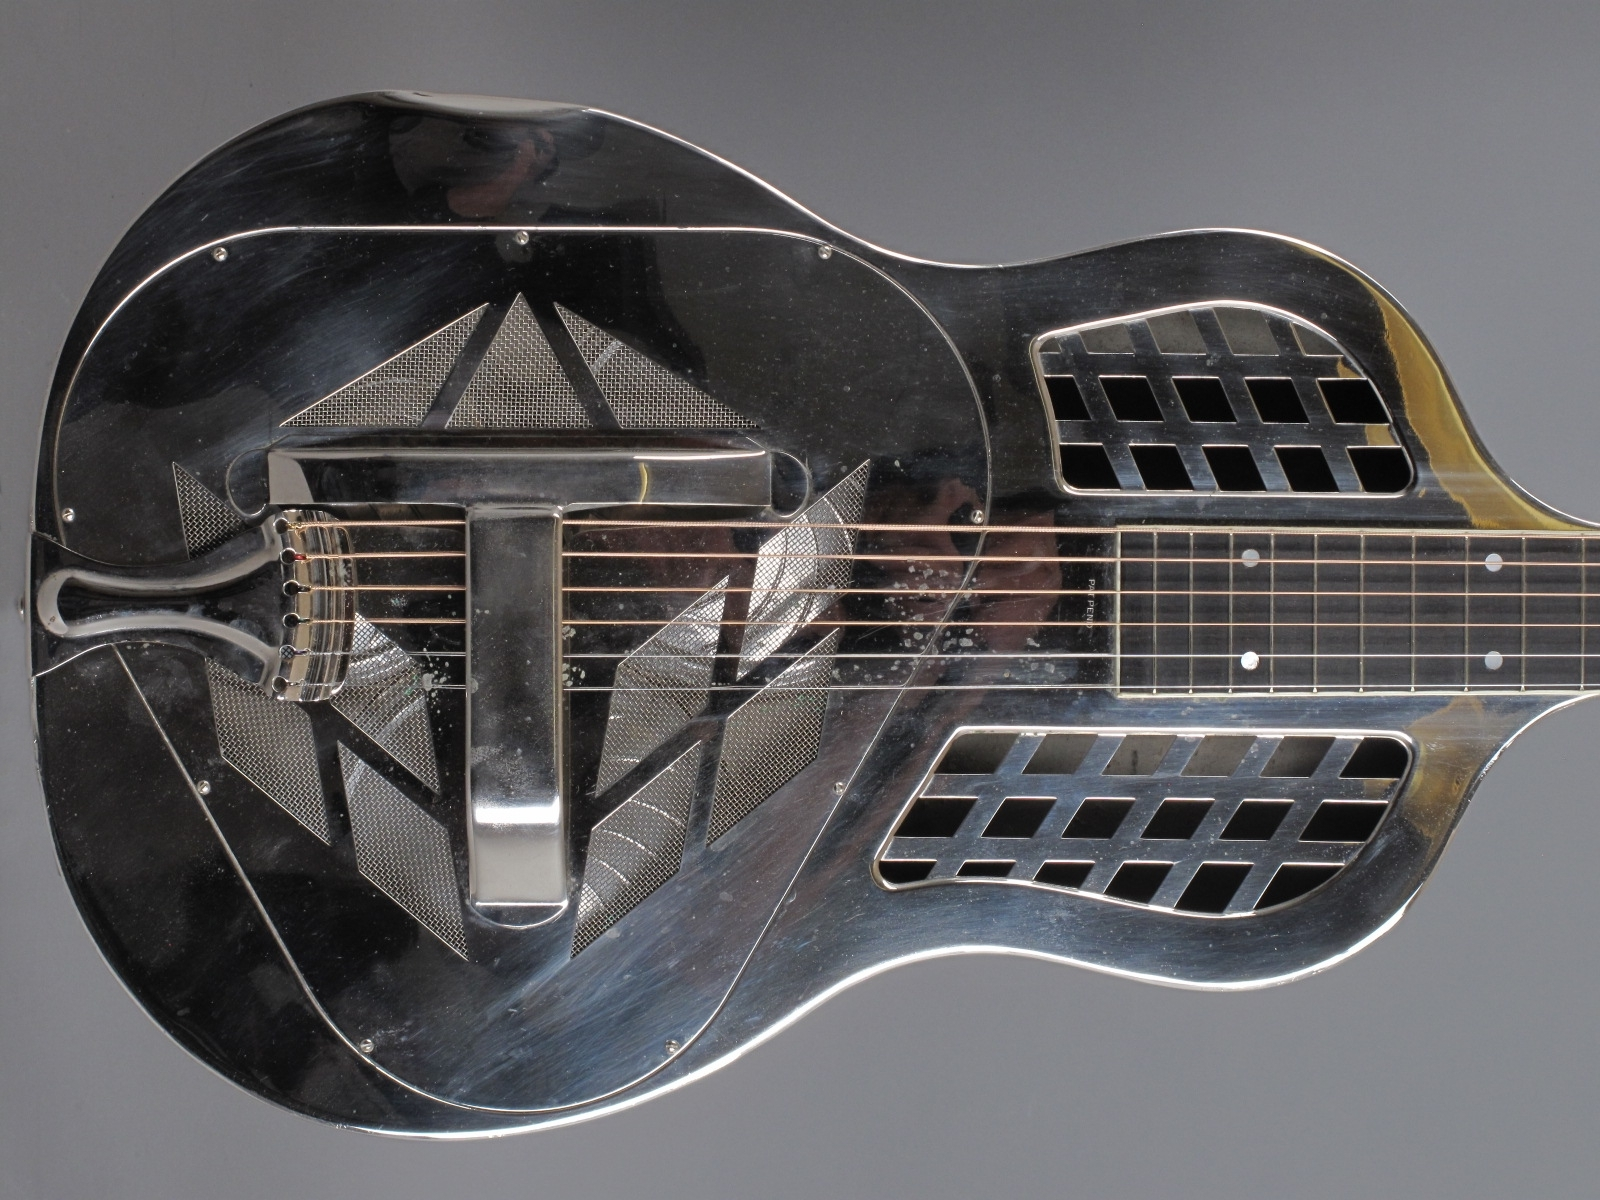 https://guitarpoint.de/app/uploads/products/1929-national-tricone-squareneck-style1/1929-National-Tricone_Style1-1531_2q.jpg